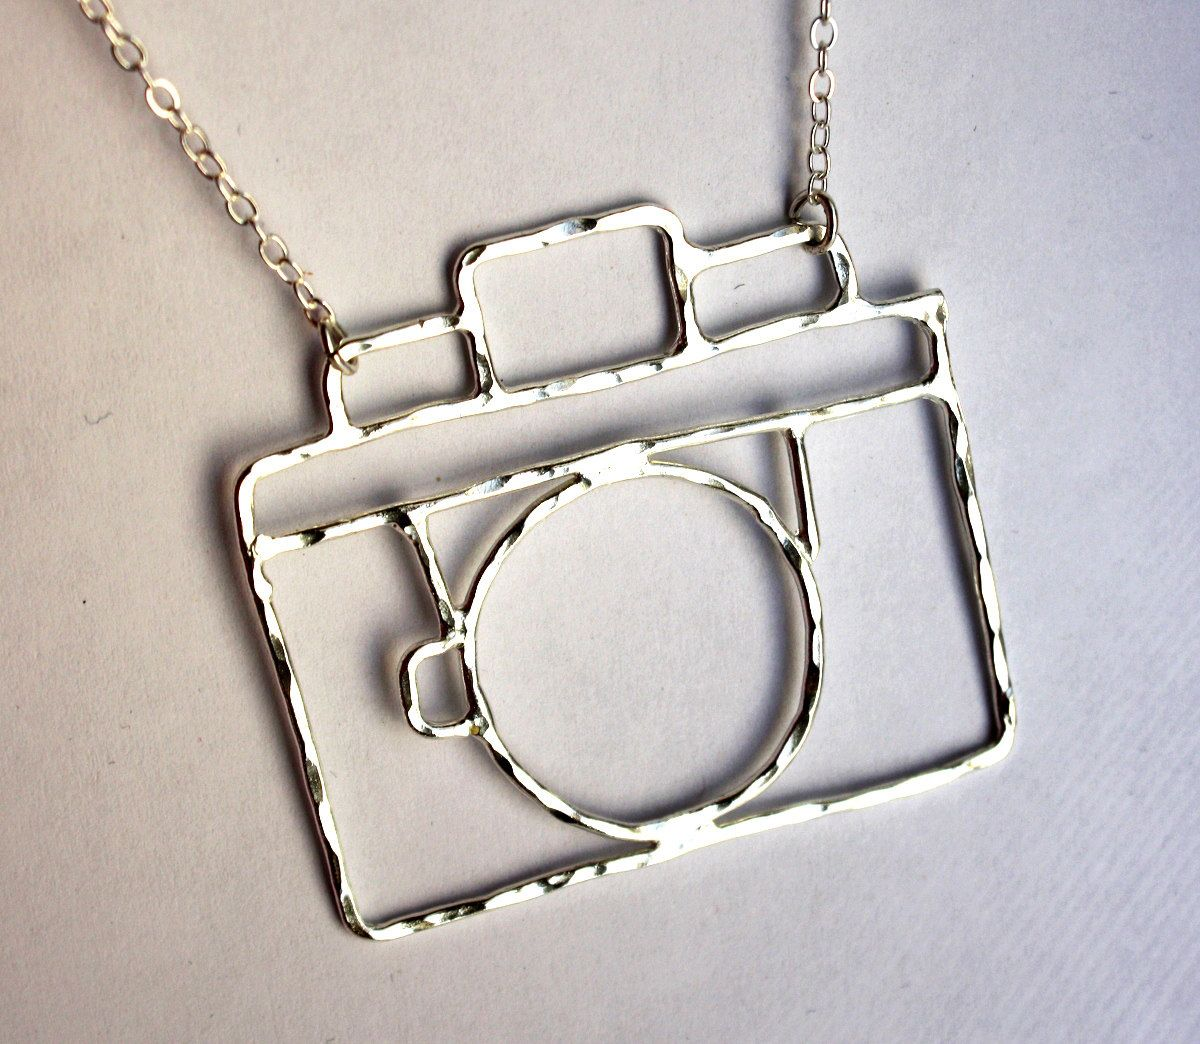 designs studio life filmstrip fullxfull jewelry necklaces sterling with silver birth all collections solid necklace camera openable il photography capture